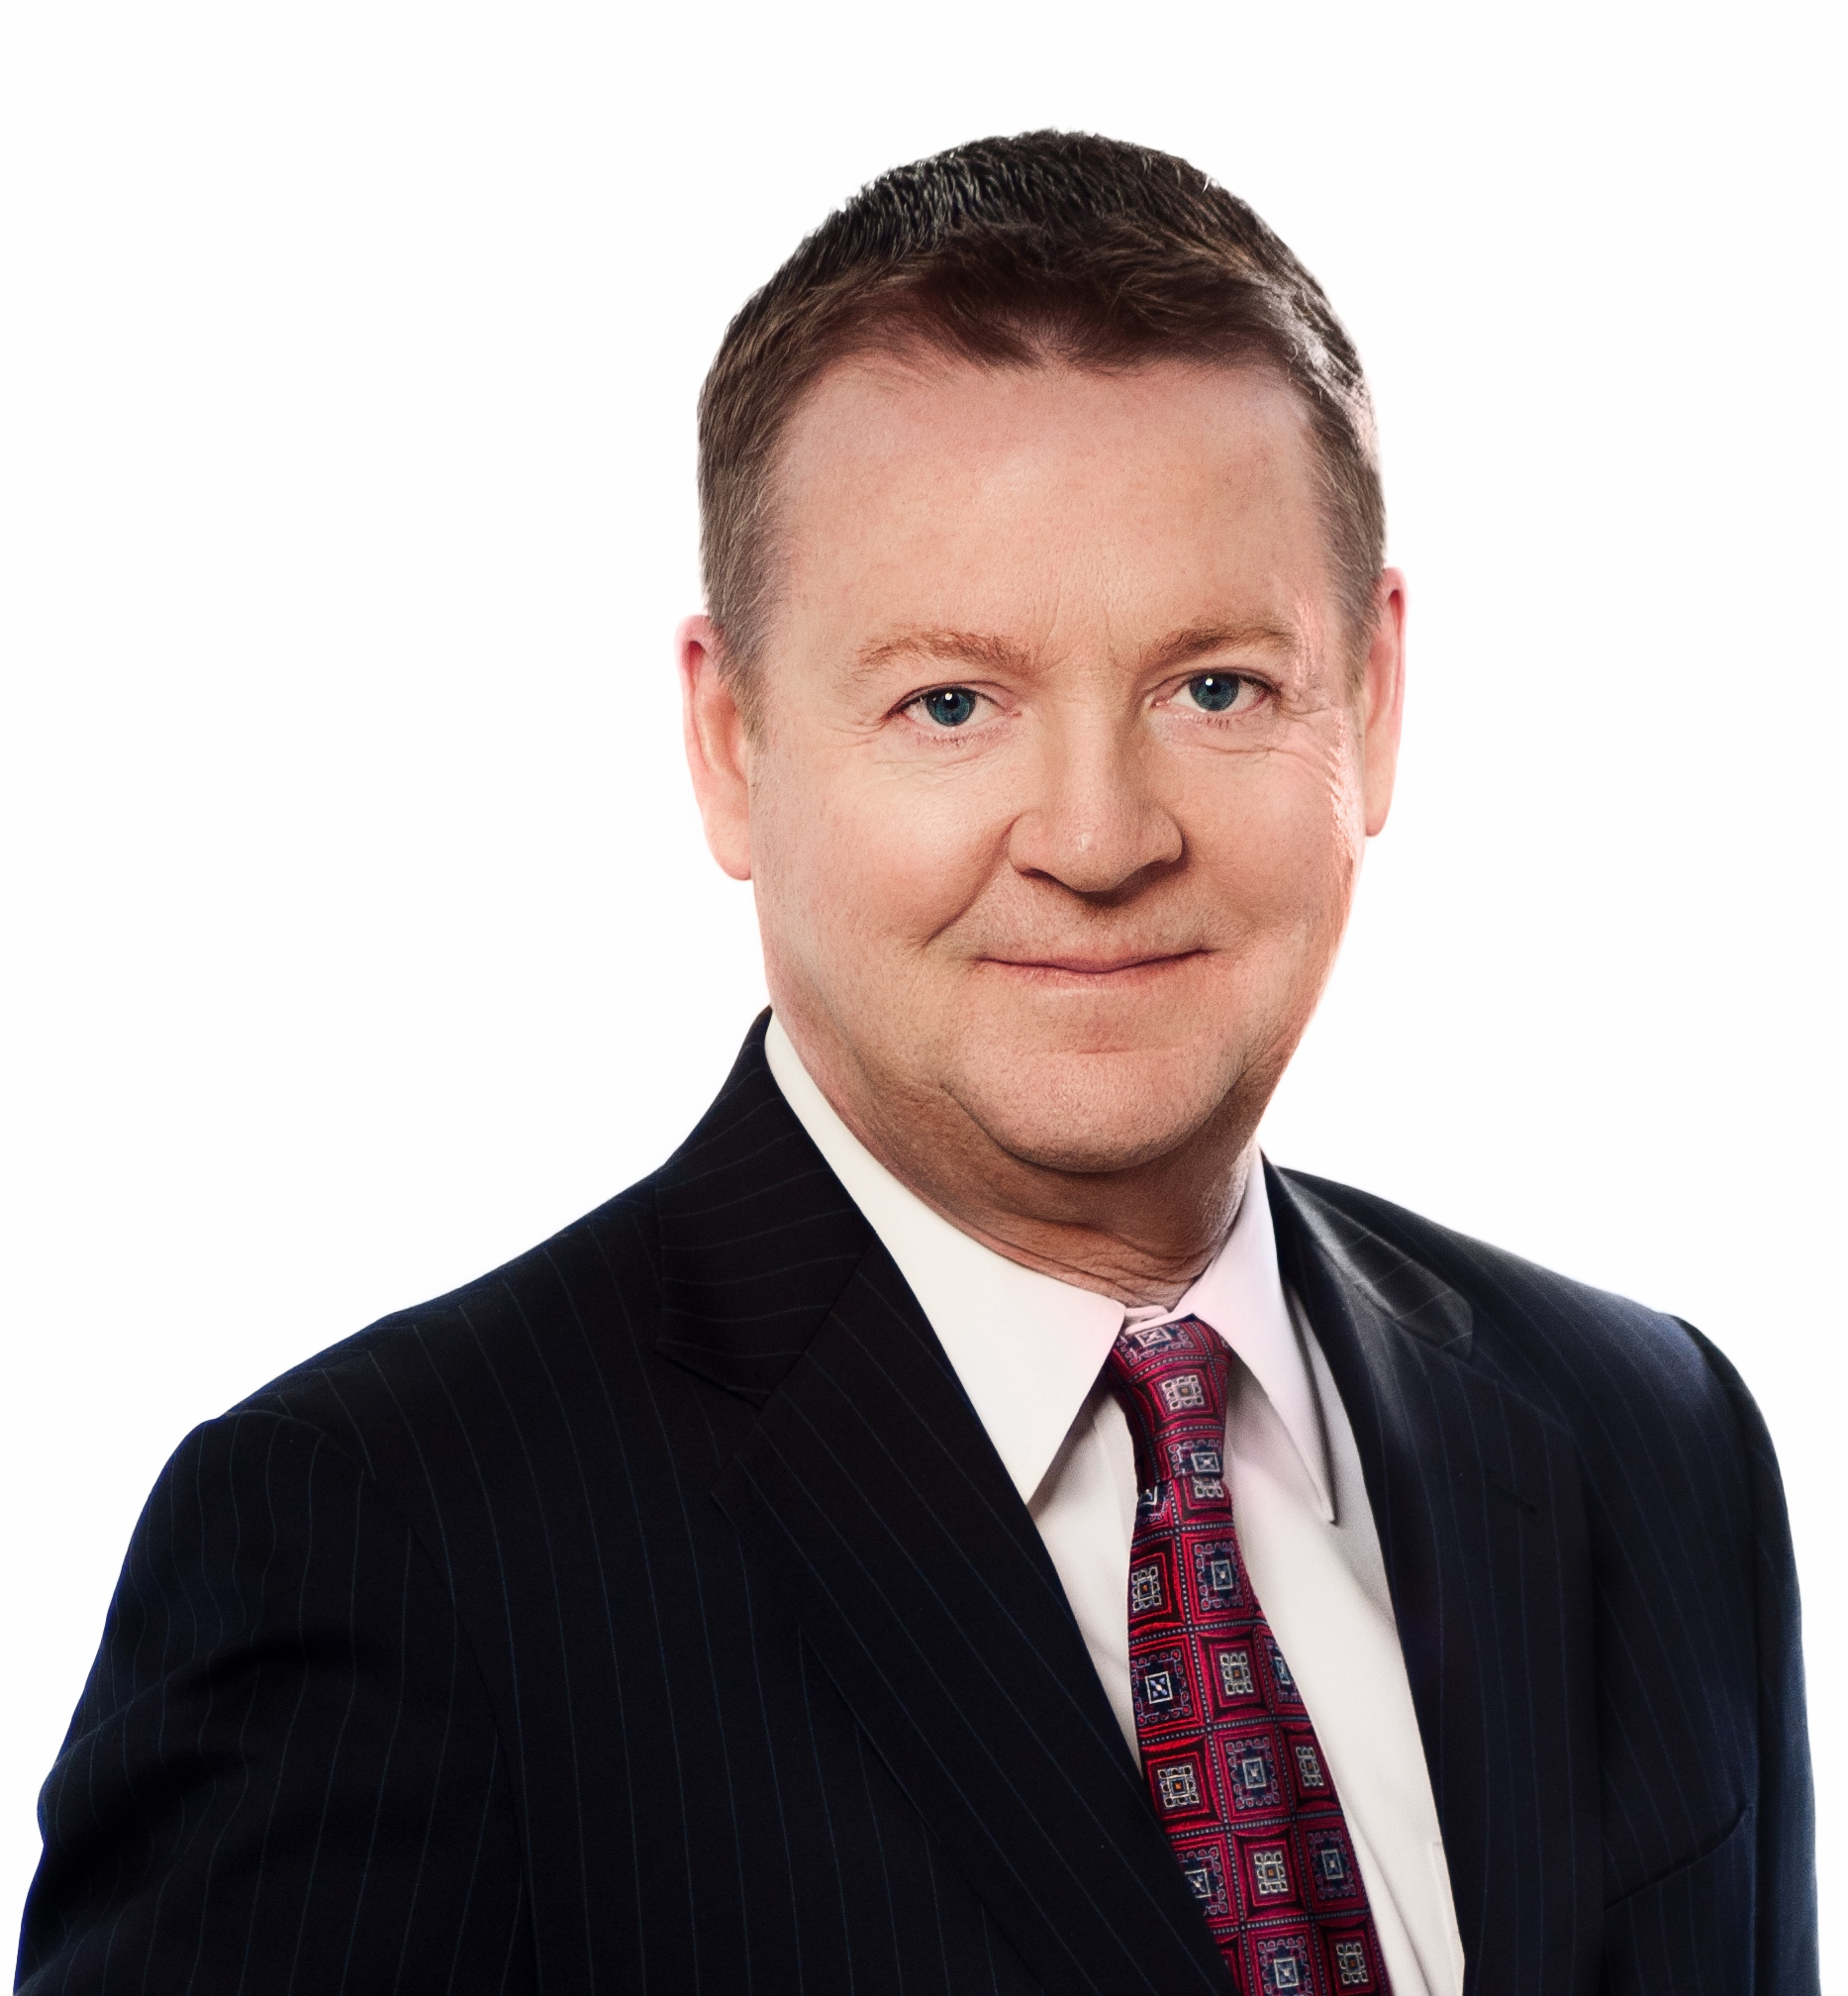 Niall Byrne, EVP and Head of Property Management, IIRES